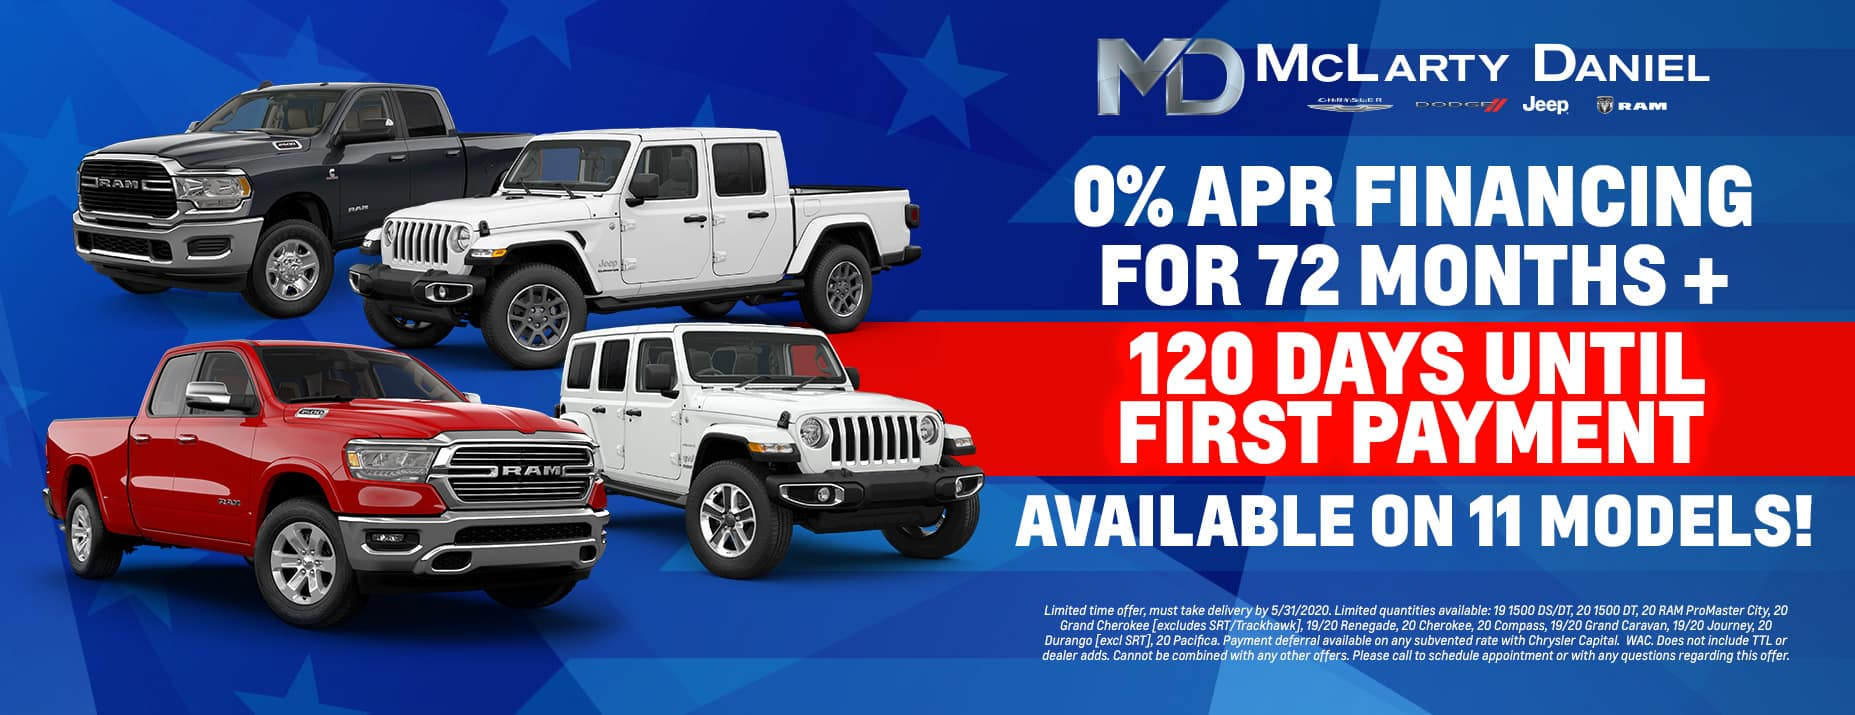 0% for 72 months PLUS 120 days until first payment: available on 11 models!